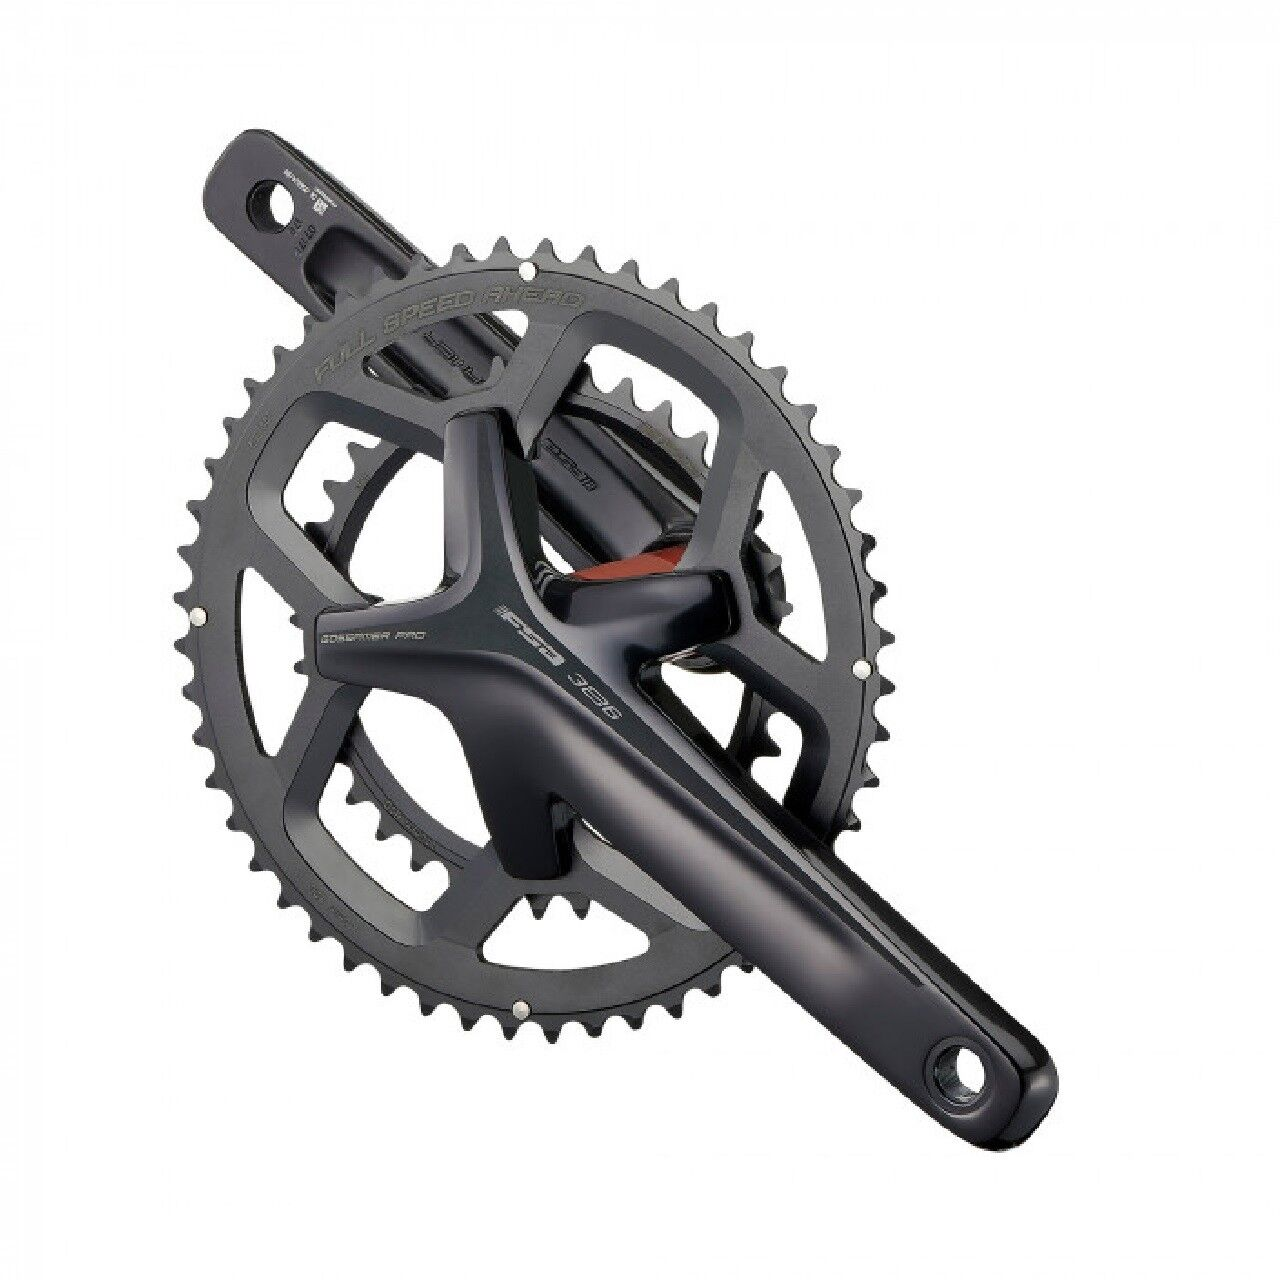 FSA GOSSAMER PRO ABS ALLOY  BB386EVO CRANKSET 36  46T - 172.5mm V19  with cheap price to get top brand